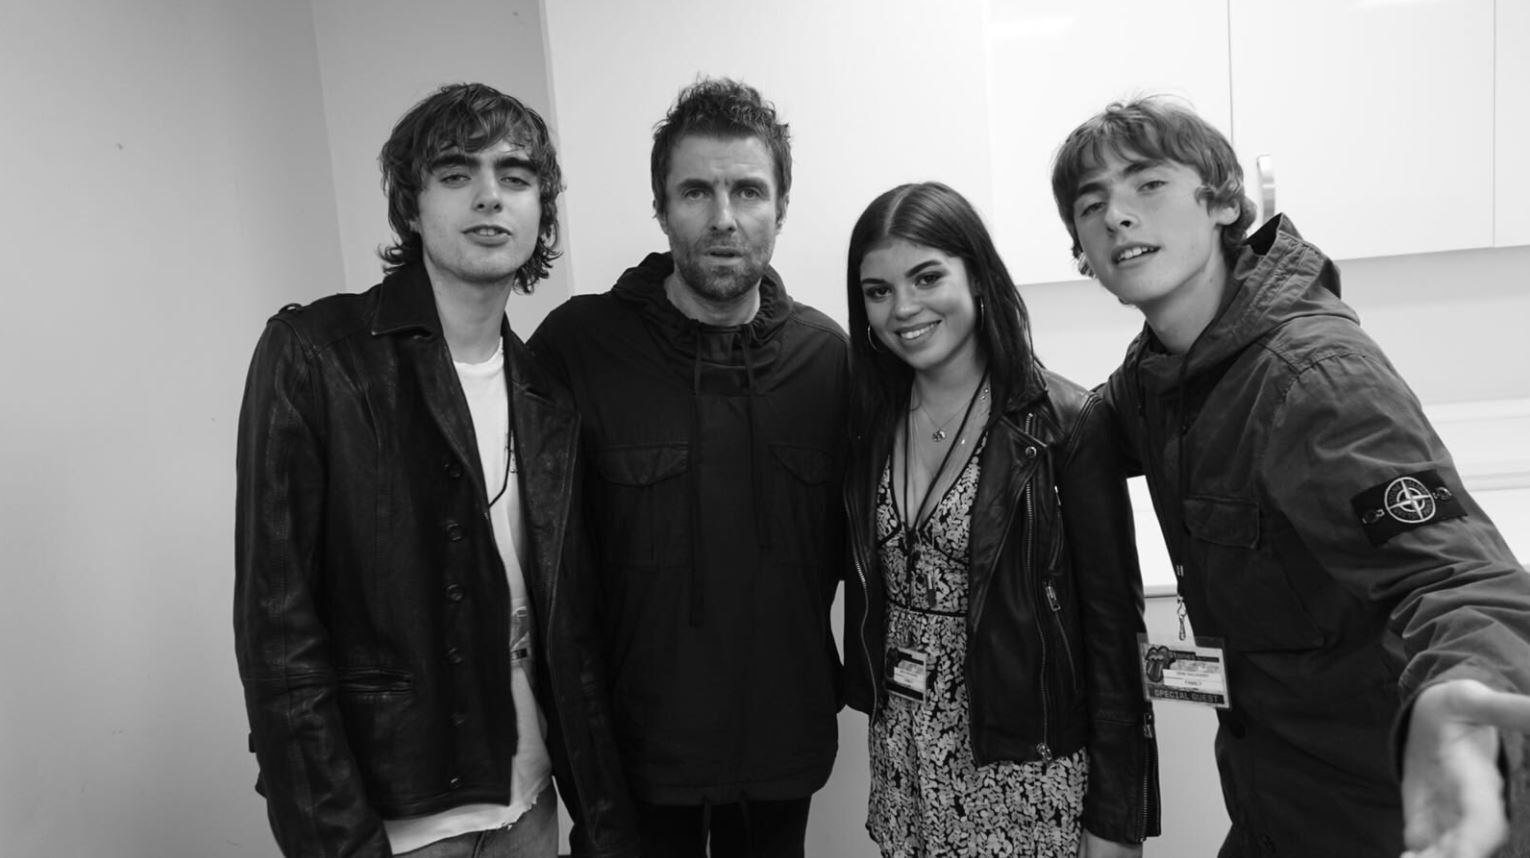 Liam Gallagher meets daughter Molly, 21, for the first time as she watches him perform